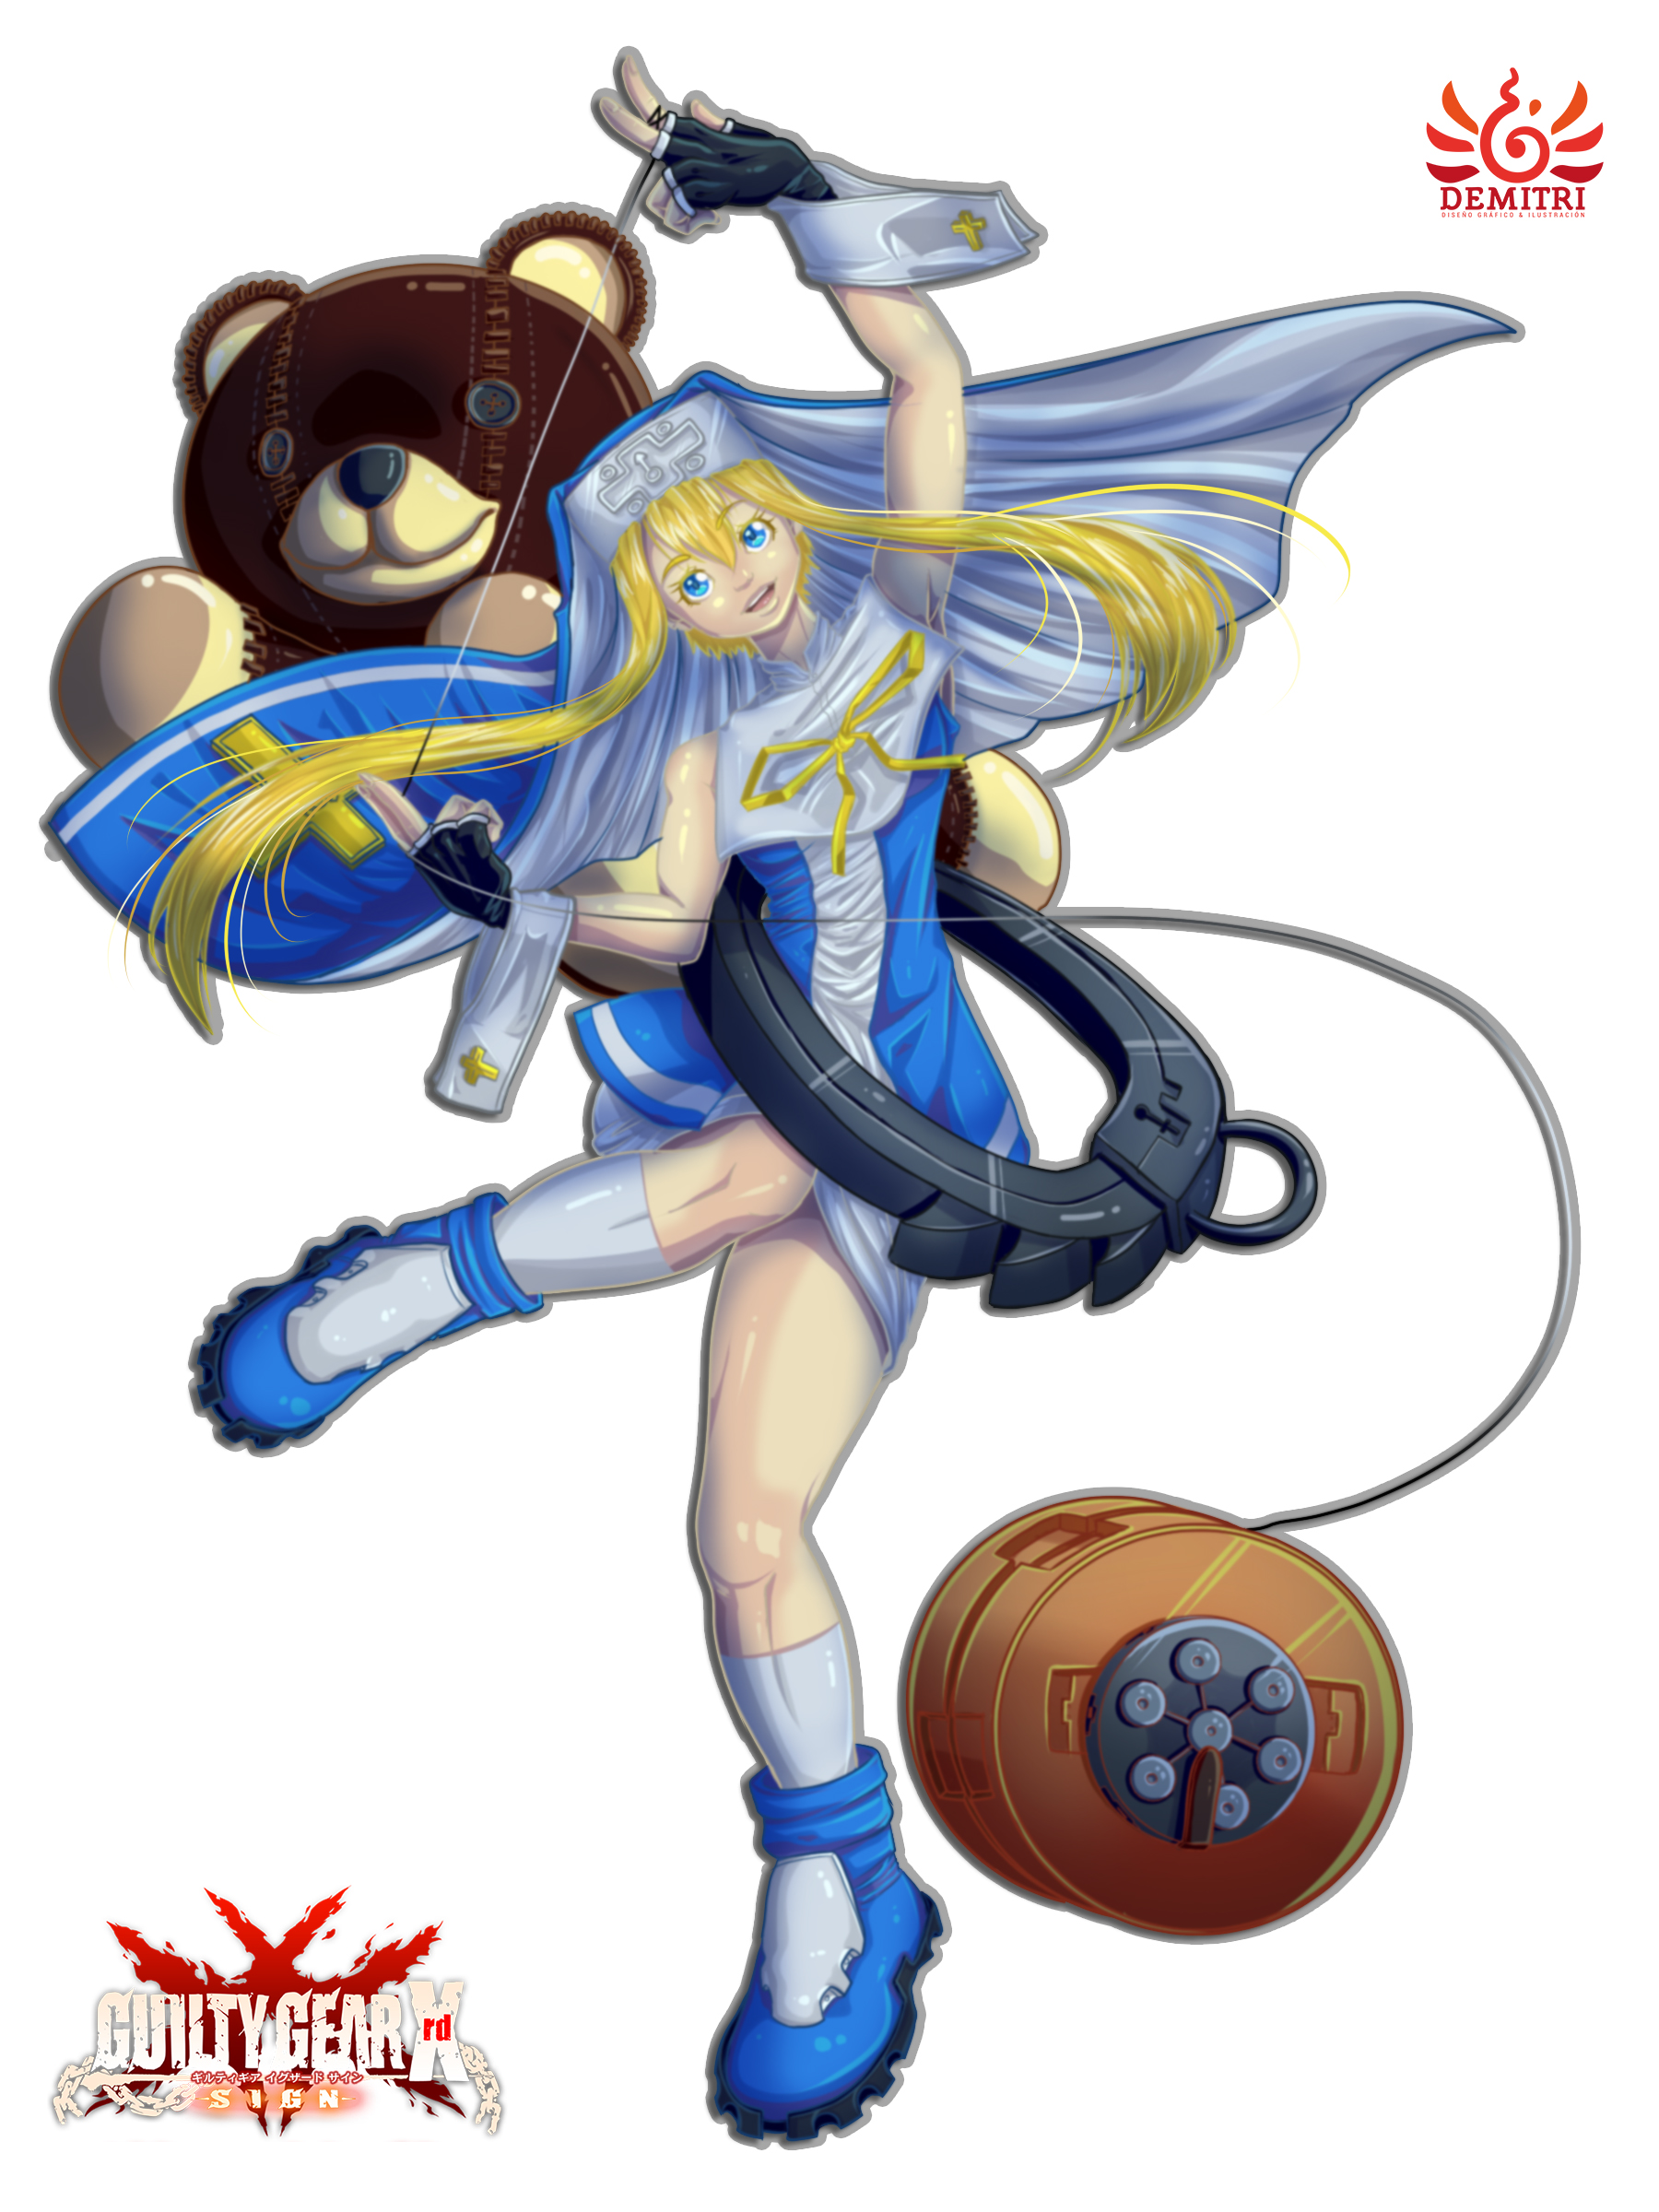 Bridget Guilty Gear Fanart By Fitoowlfish On Deviantart